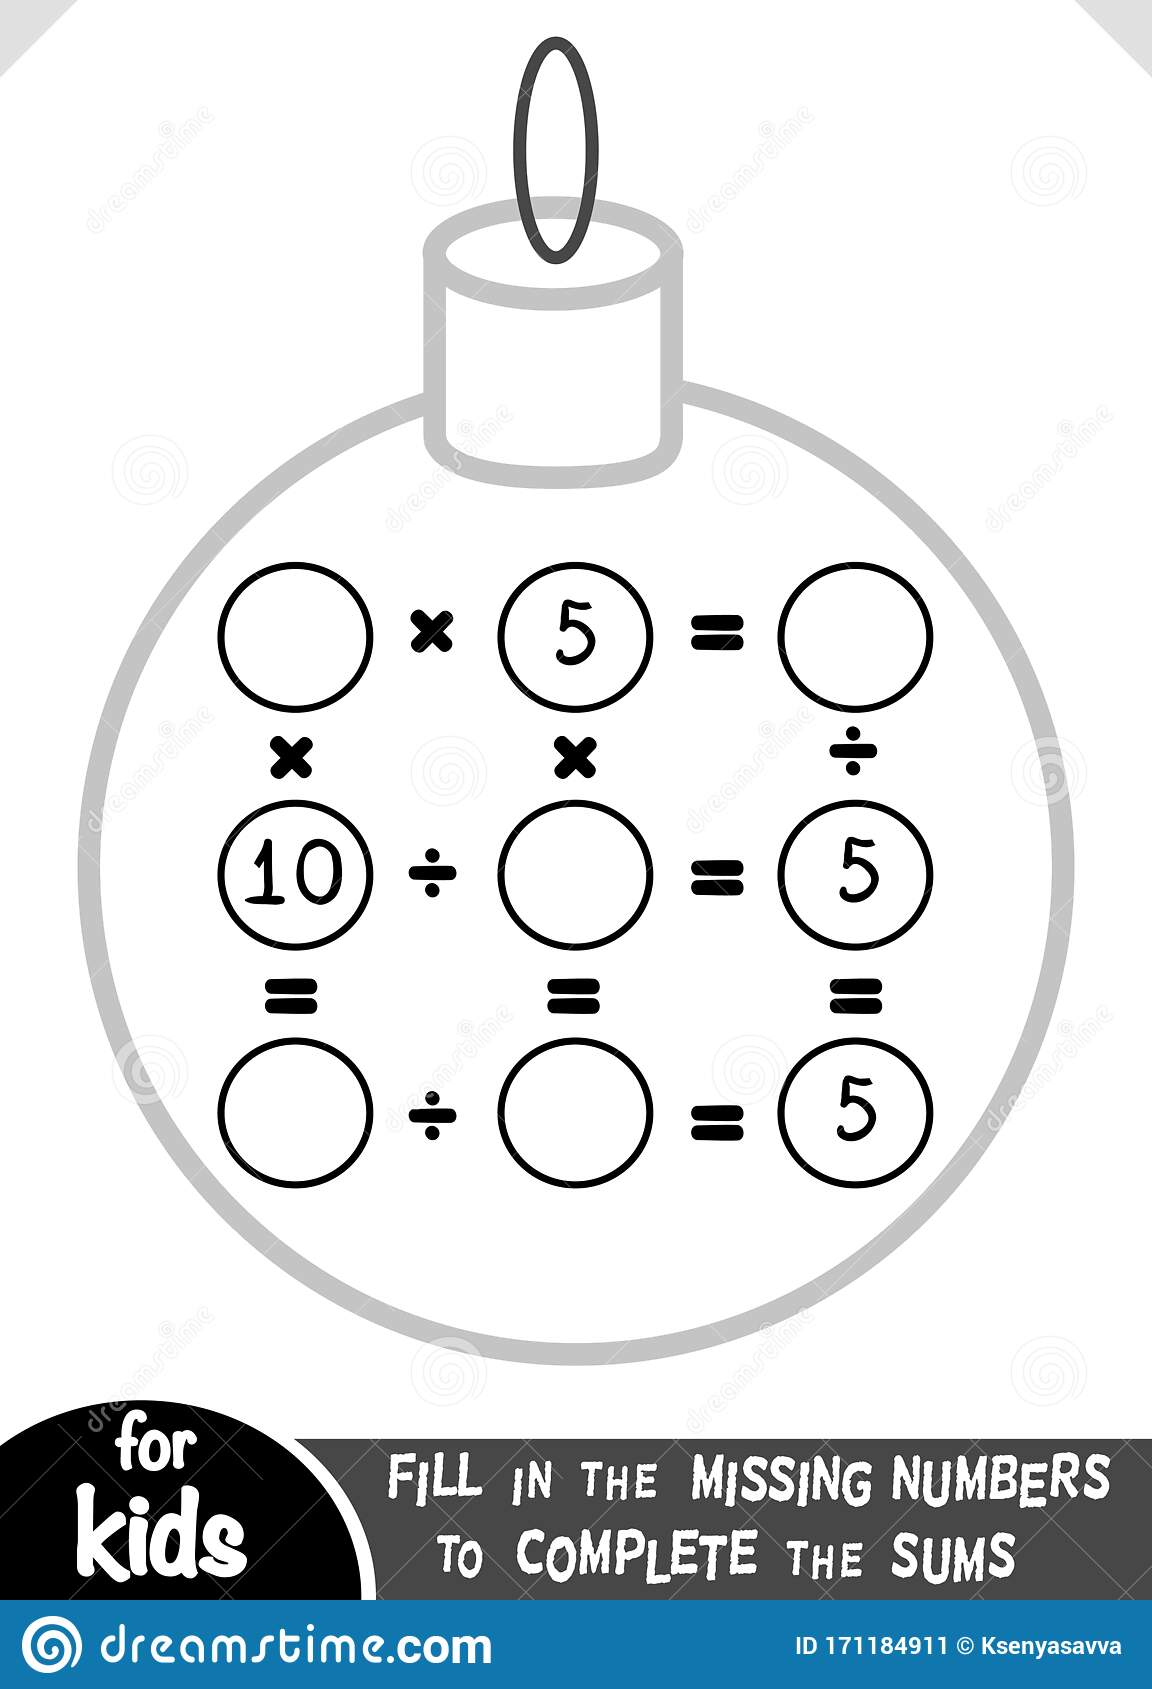 hight resolution of Counting Game For Preschool Children. Educational A Mathematical Game.  Multiplication And Division Worksheet With Christmas Ball Stock Vector -  Illustration of kindergarten